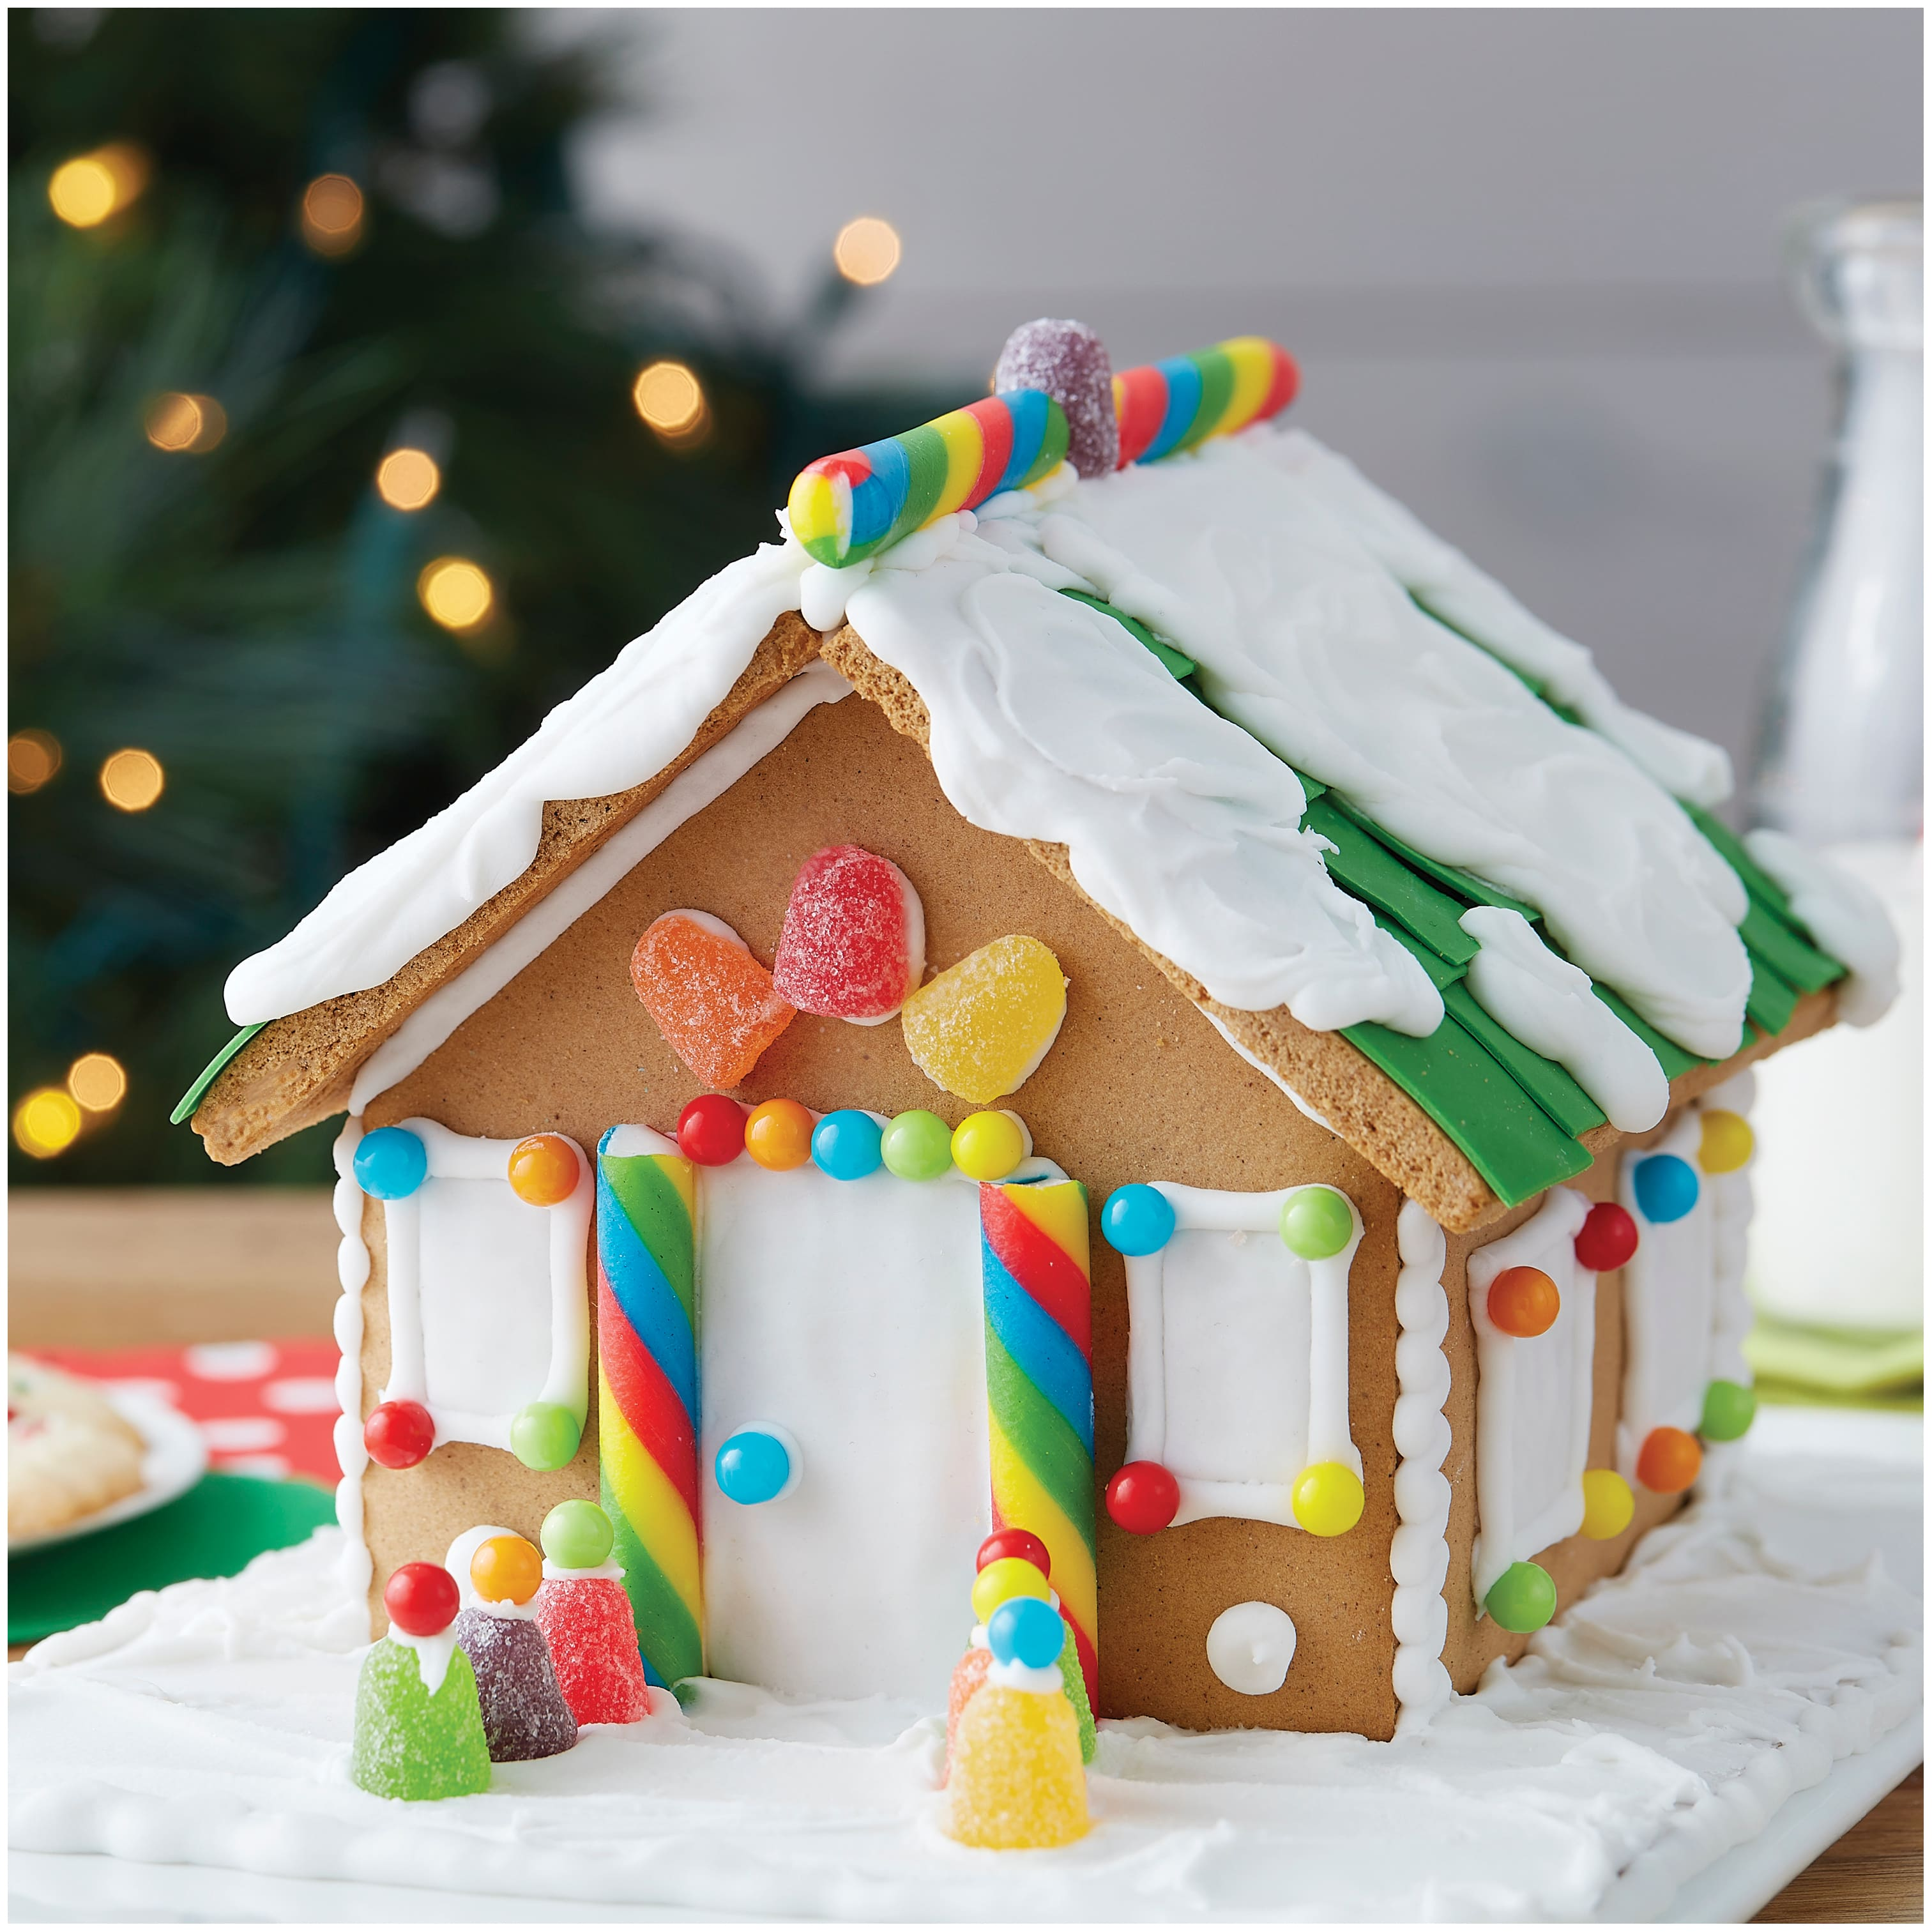 Wilton Build-it-Yourself Gingerbread Houses starting at $4.48 + Free Store Pickup at Walmart